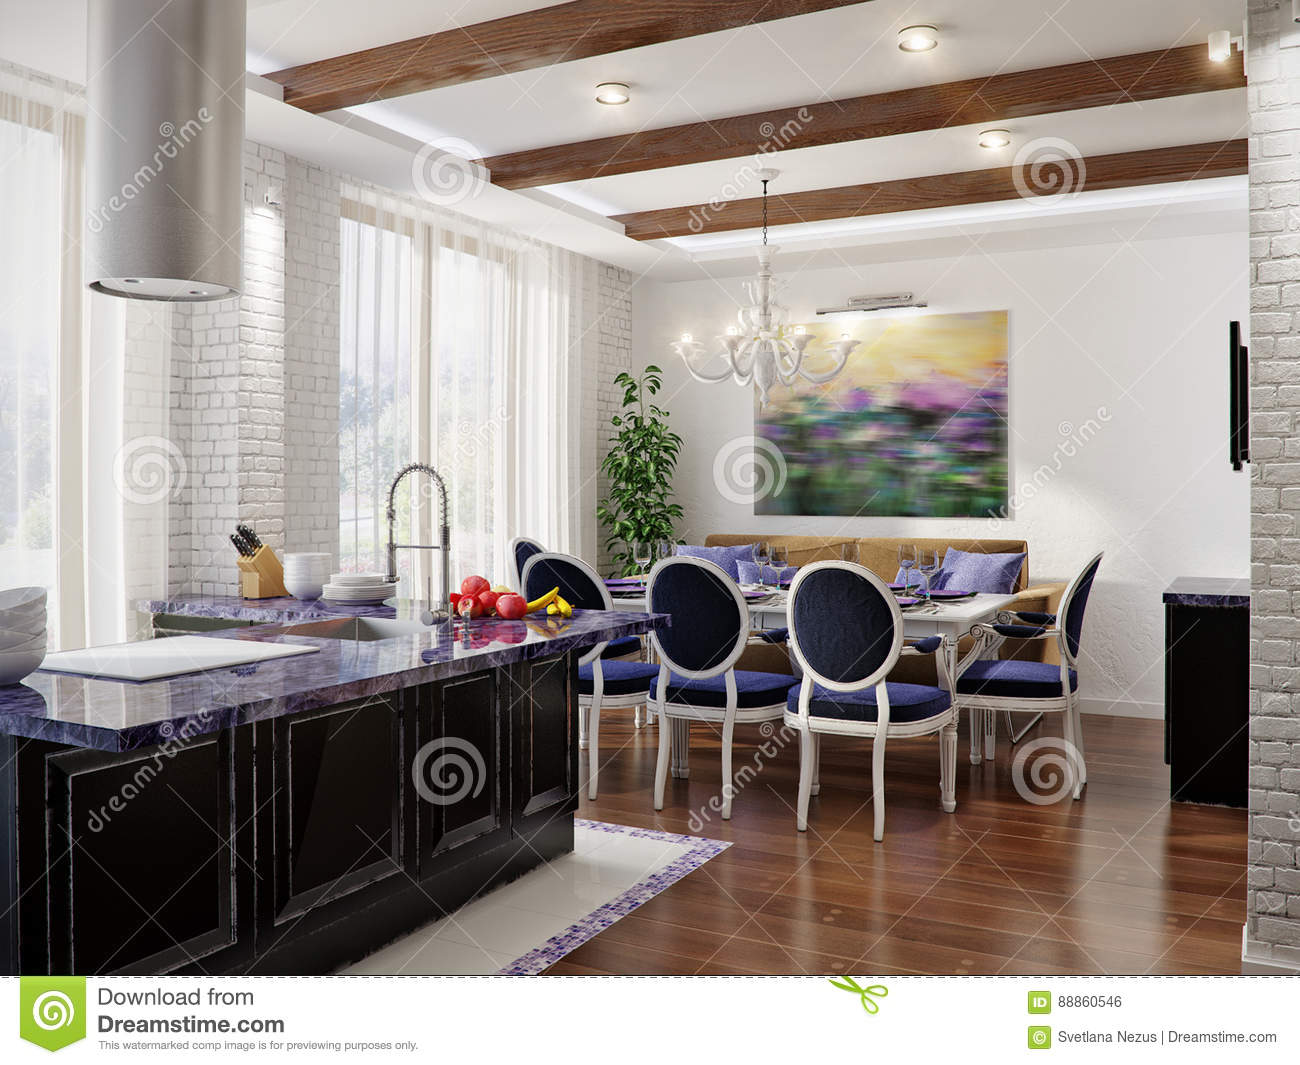 Marvelous Classic Interior Design Of Dining Room And Kitchen